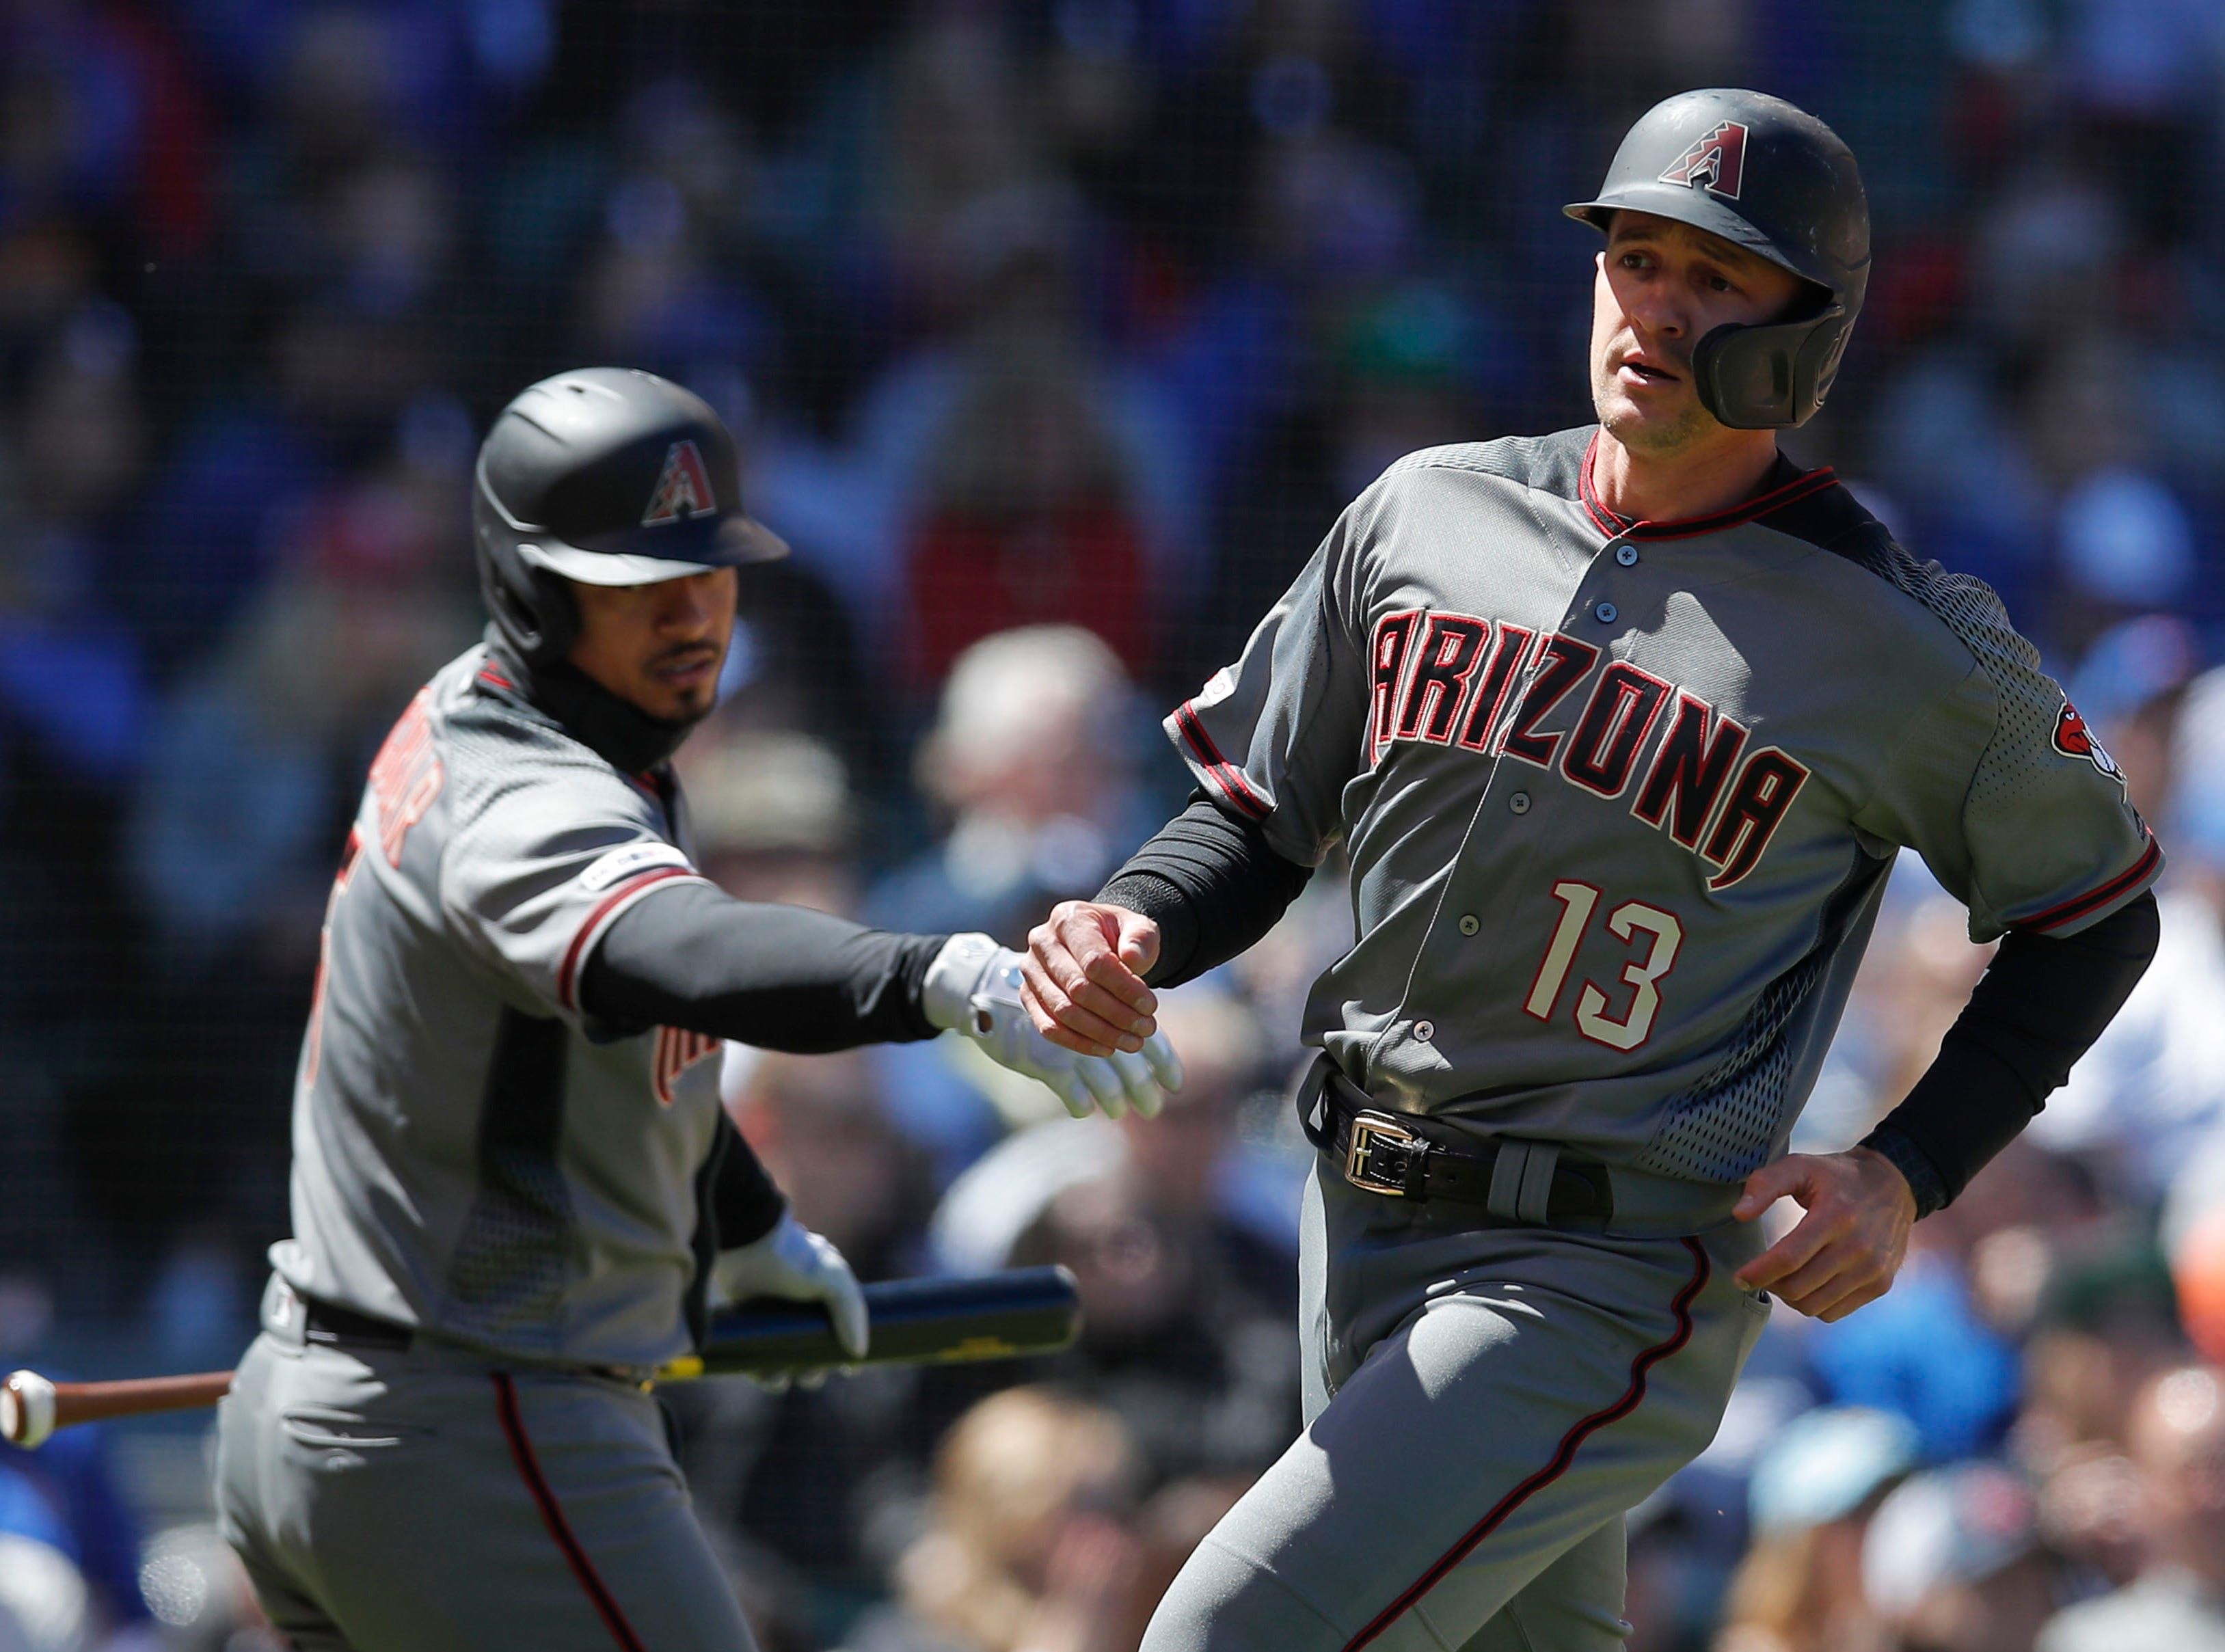 Diamondbacks shortstop Nick Ahmed comes in to scores past third baseman Eduardo Escobar during the second inning of a game April 20 at Wrigley Field.